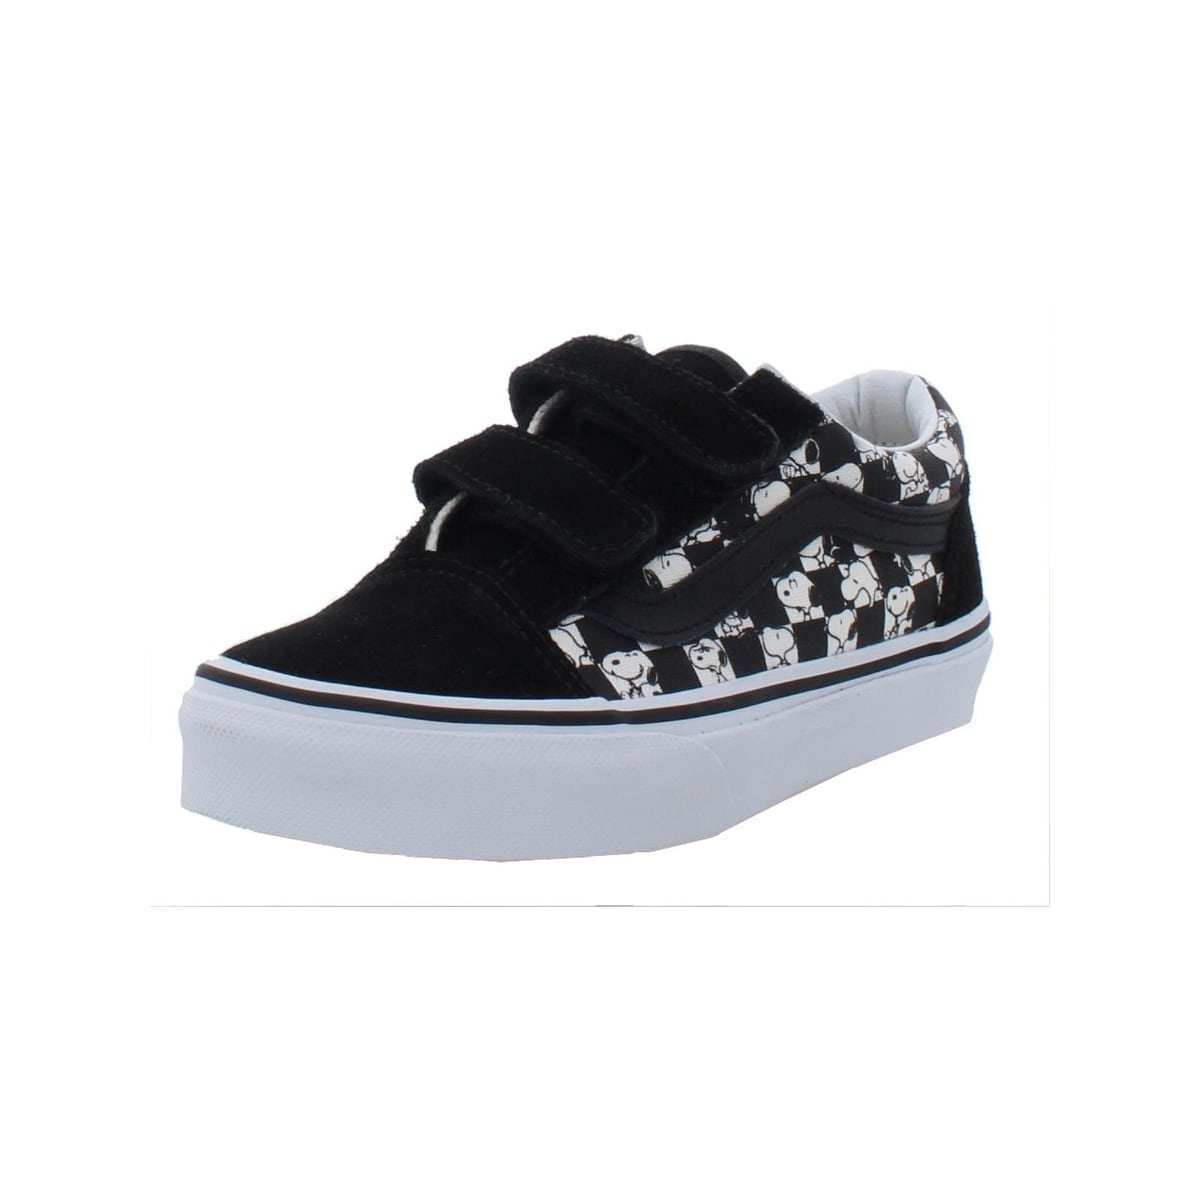 92abf13636 Vans Boys  Shoes